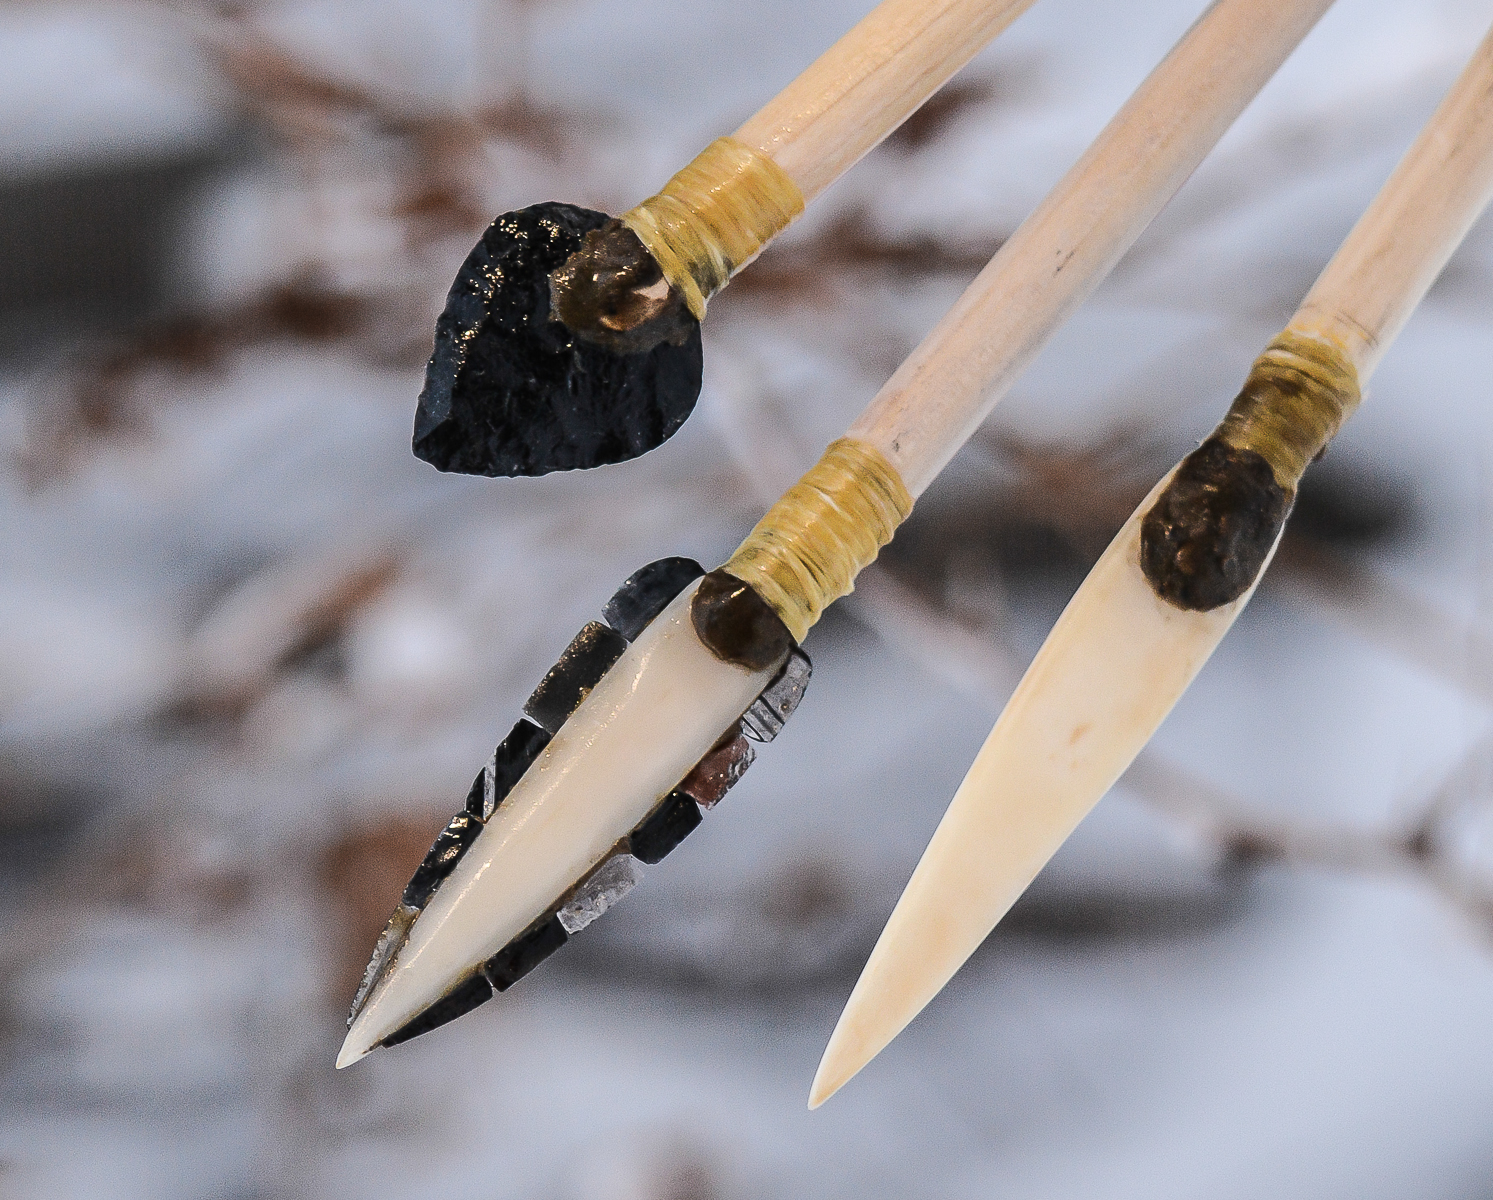 University of Washington researchers reconstructed ancient projectile points to test their effectiveness on post-Ice Age prey. From left to right: stone, microblade and bone tips.